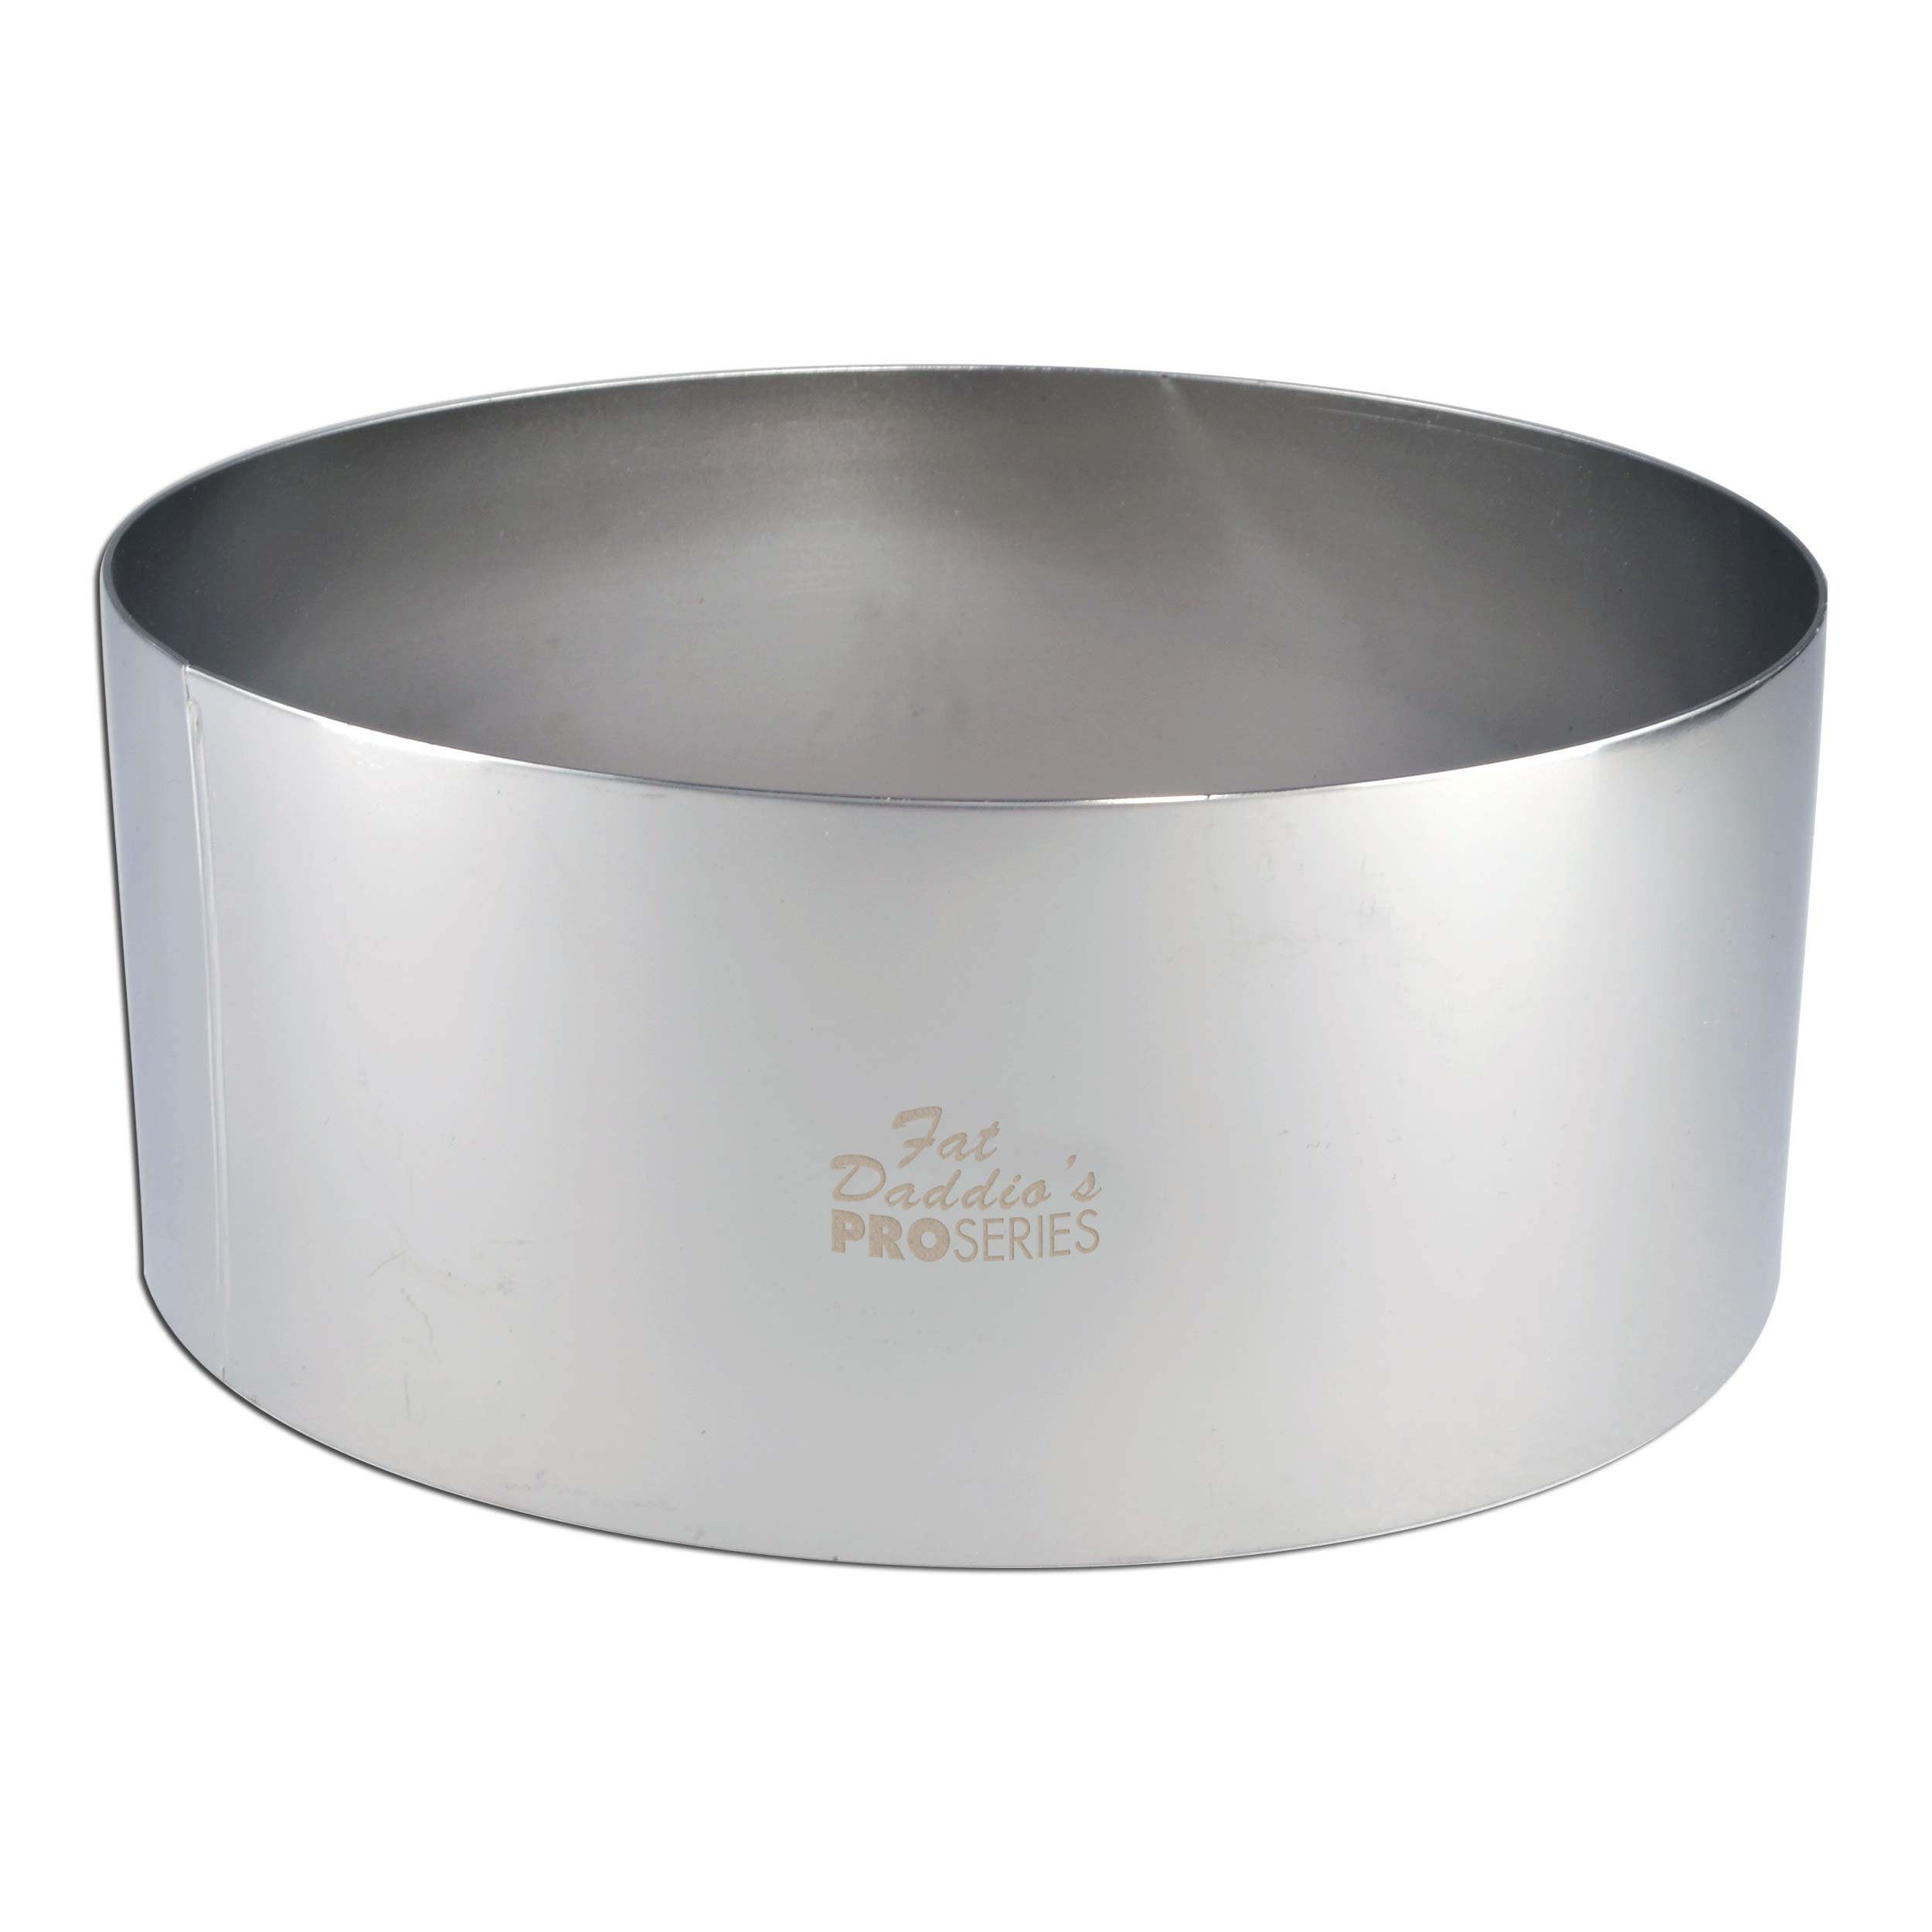 Fat Daddio's Stainless Steel Round Cake and Pastry Ring, 9 Inch x 3 Inch